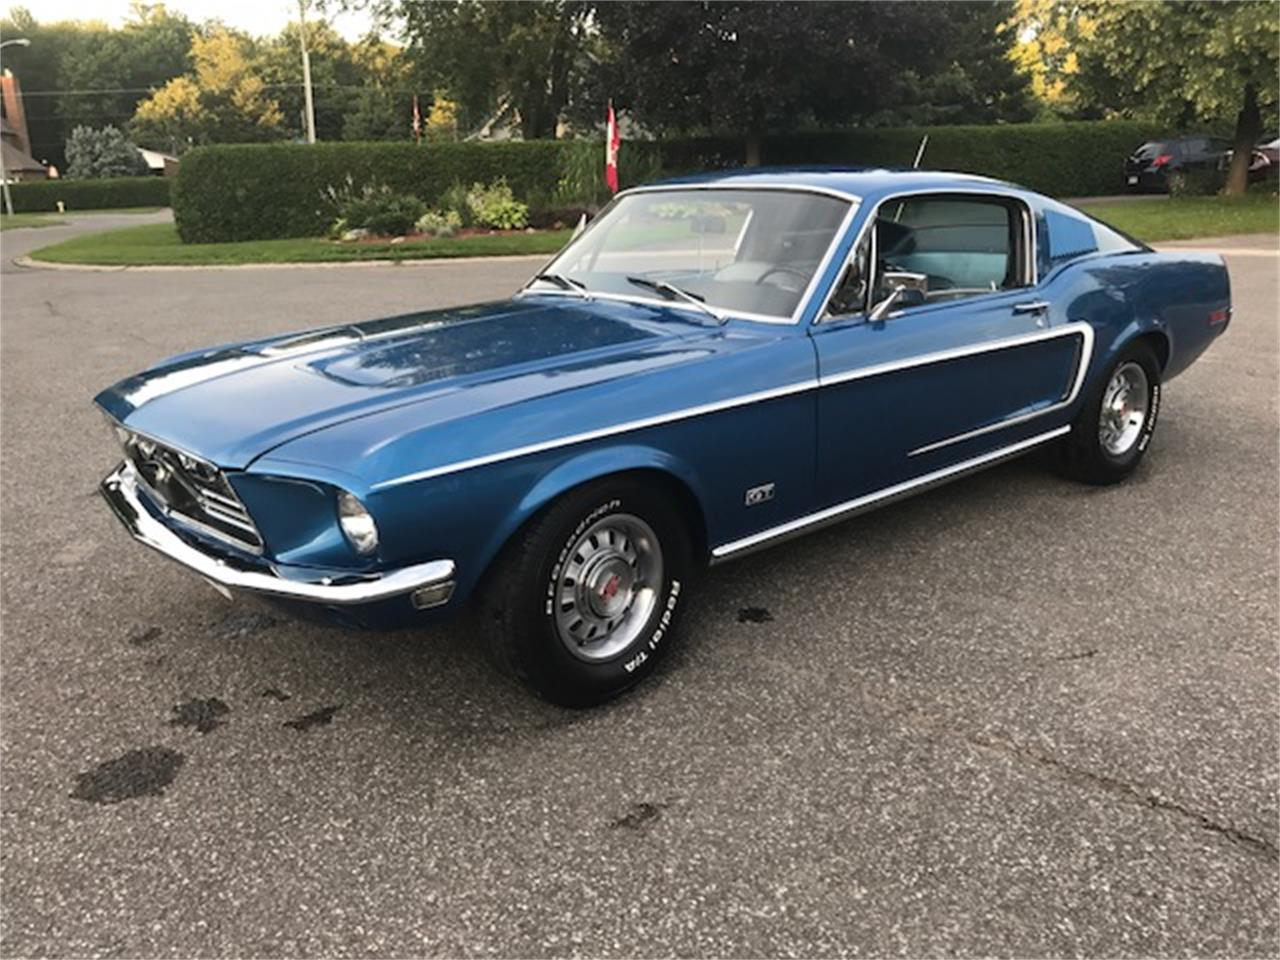 Large Picture of Classic '68 Ford Mustang - $55,000.00 - MGW8